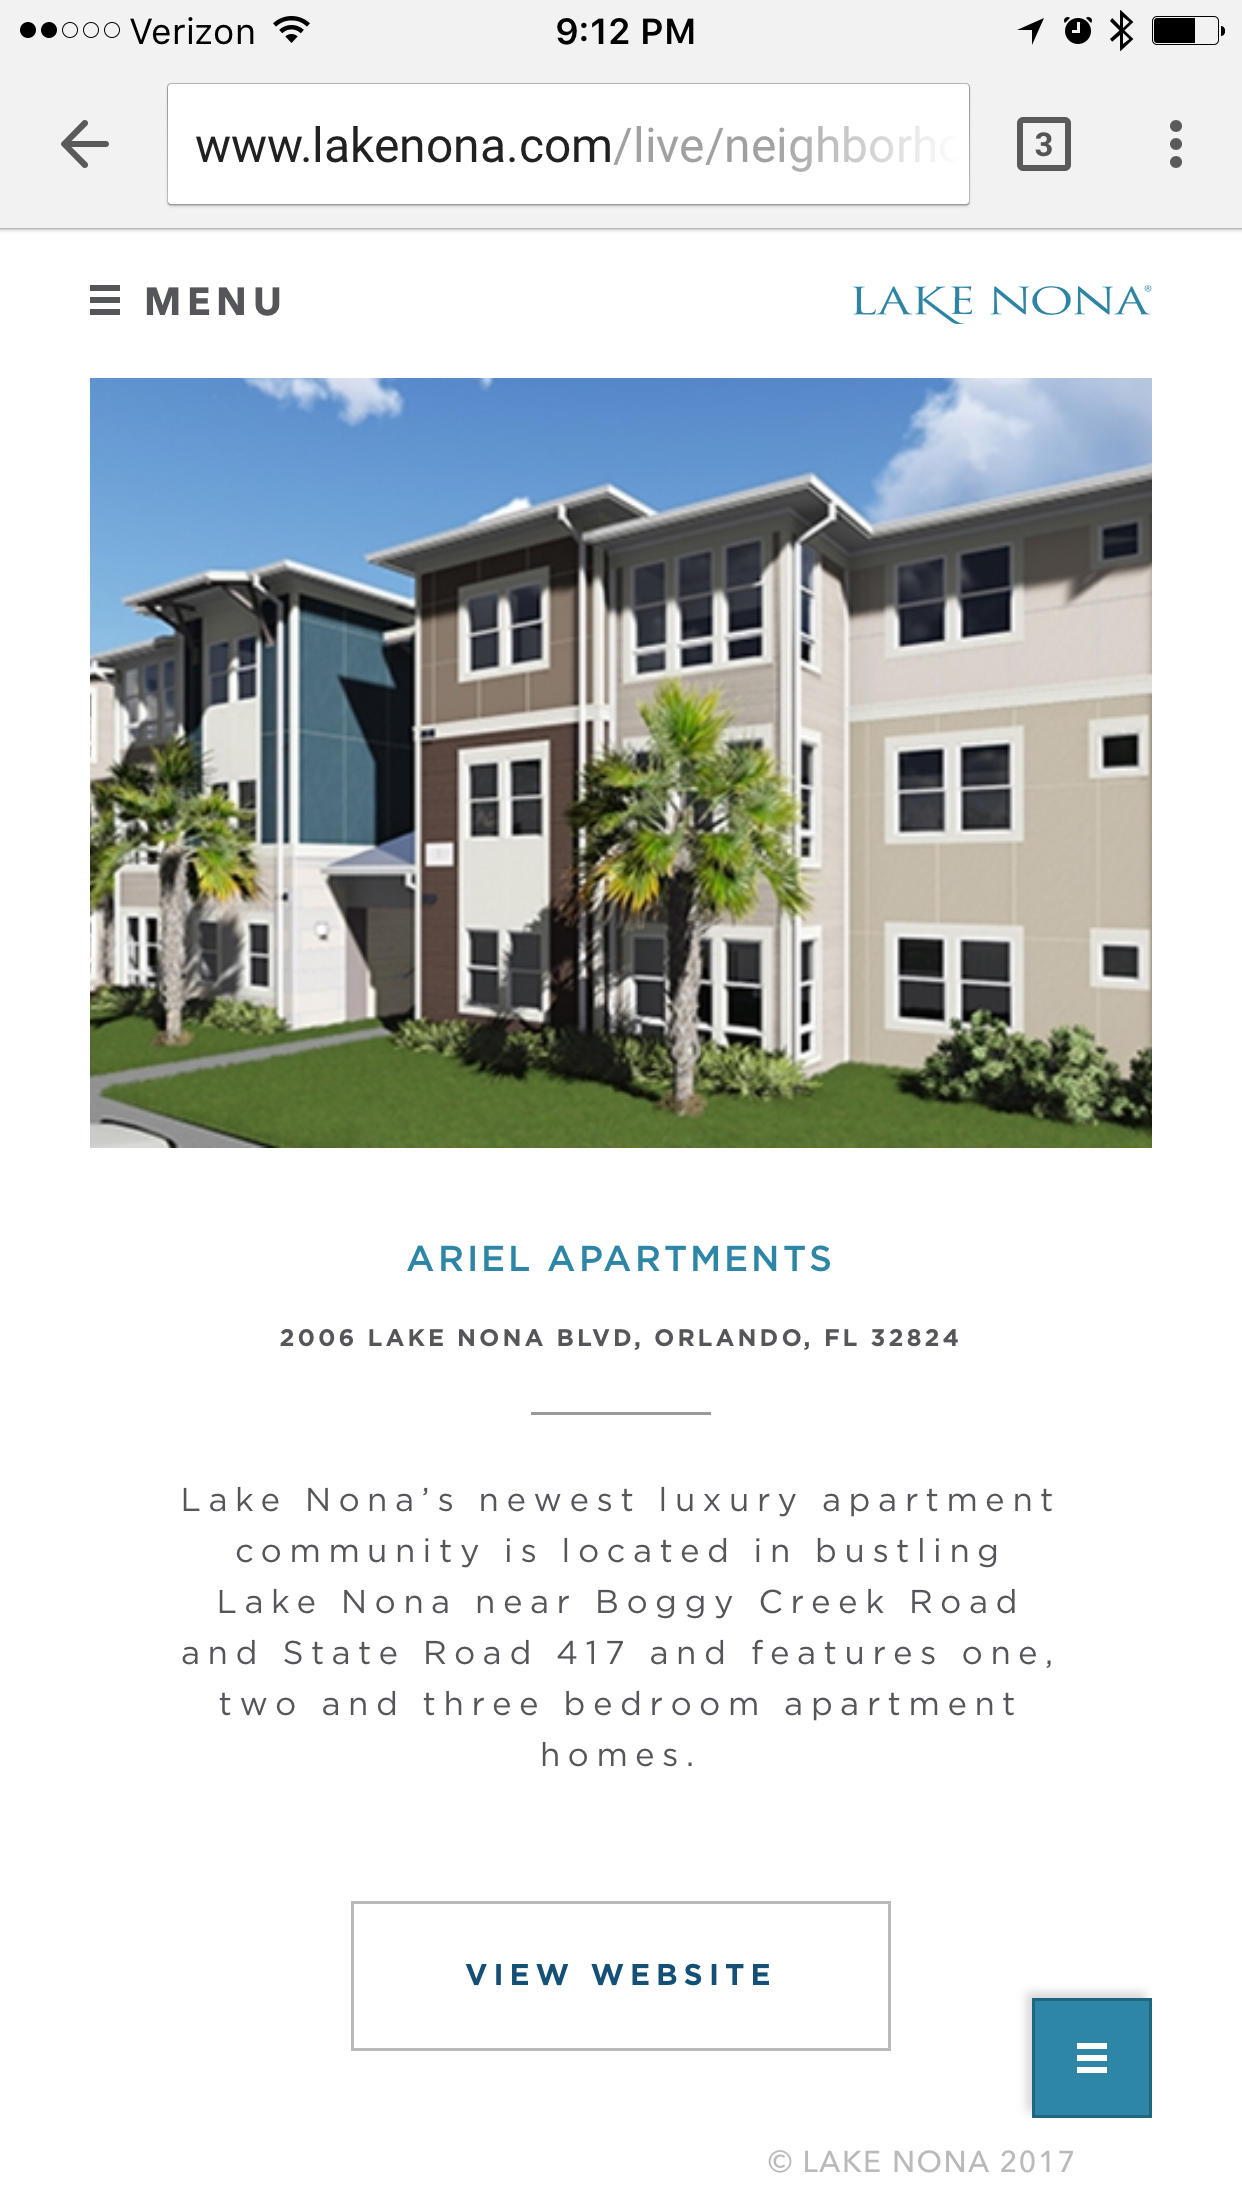 Ariel Apartments brand new apartments in Lake Nona